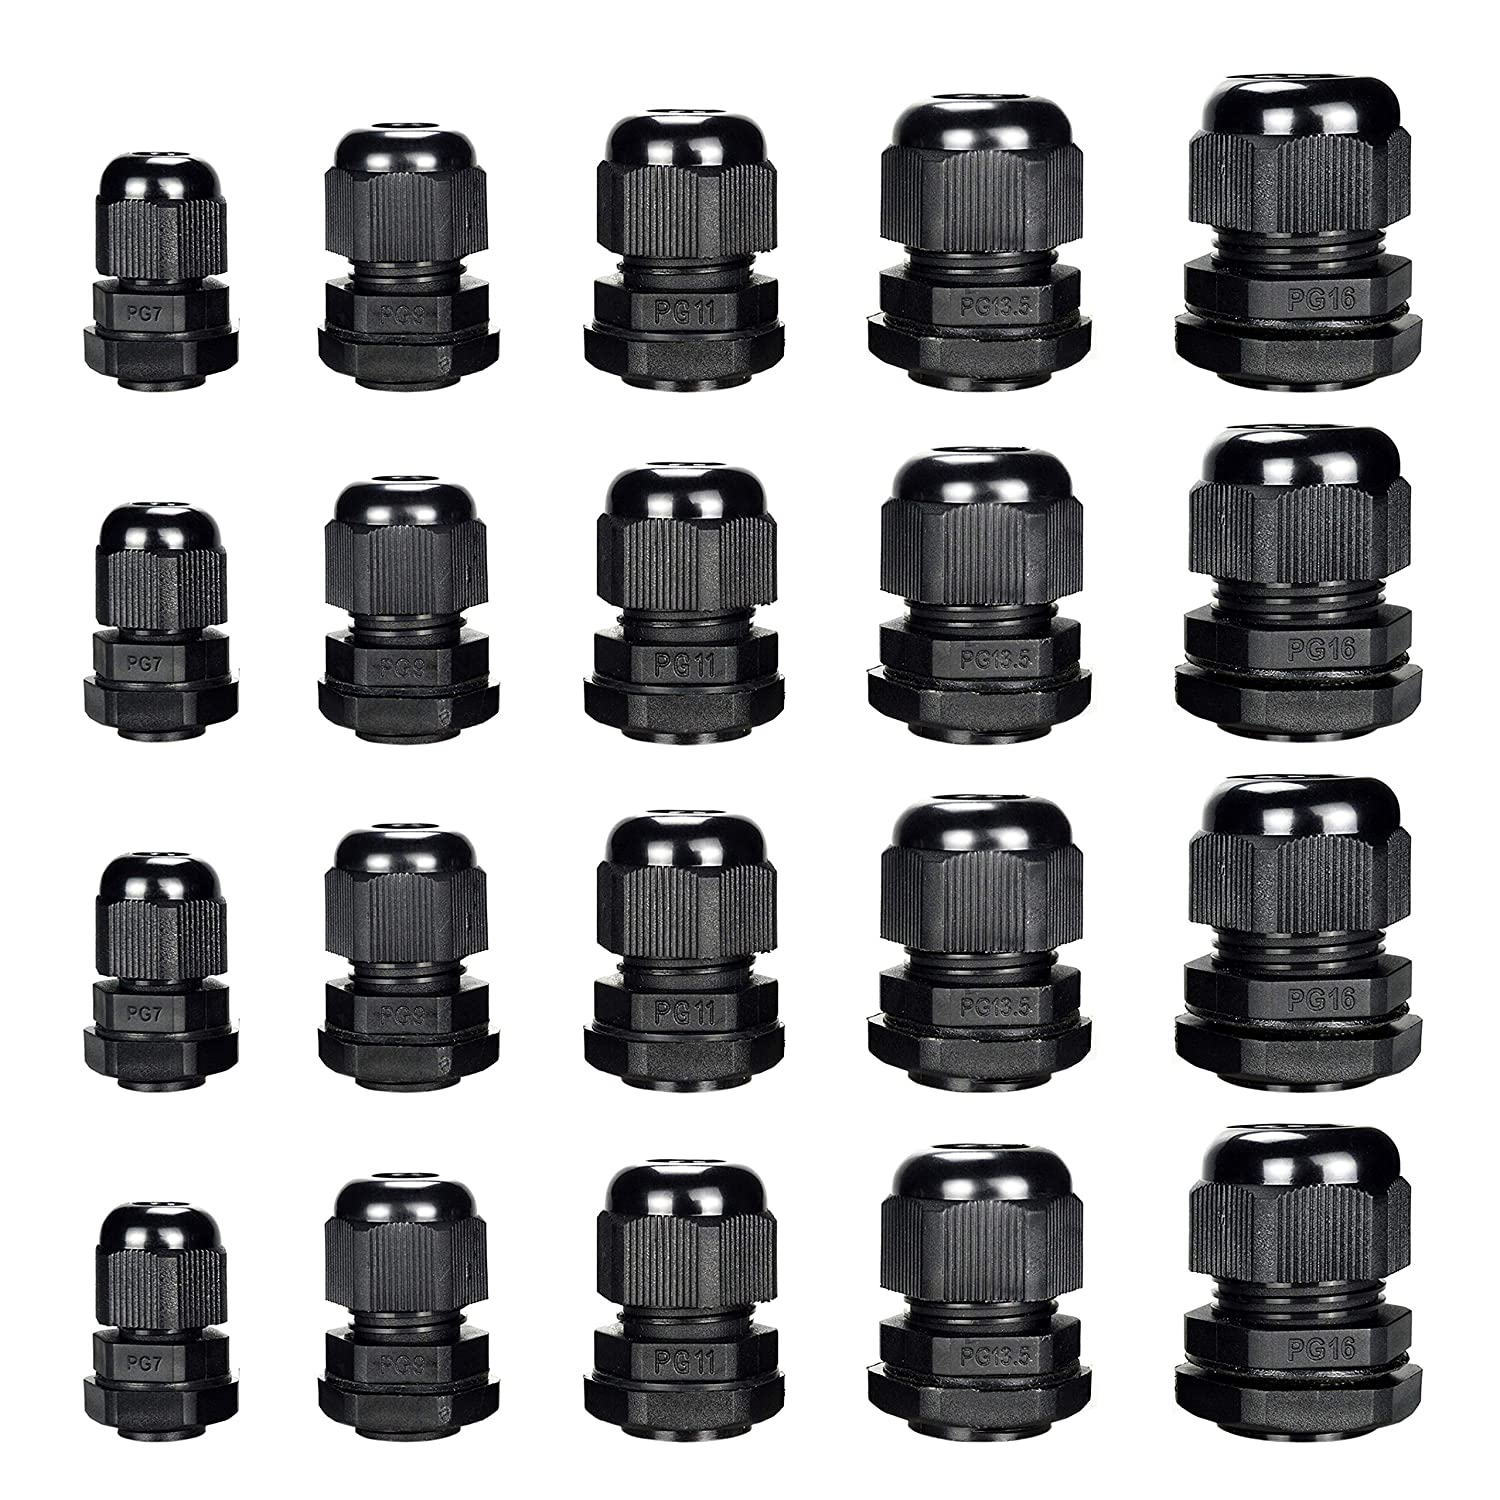 Cable Gland Plastic Waterproof Cable Connector Adjustable 0.12 to 0.55 inch Cable PG7 PG9 PG11 PG13.5 PG16 Pack of 20 by MoArmor